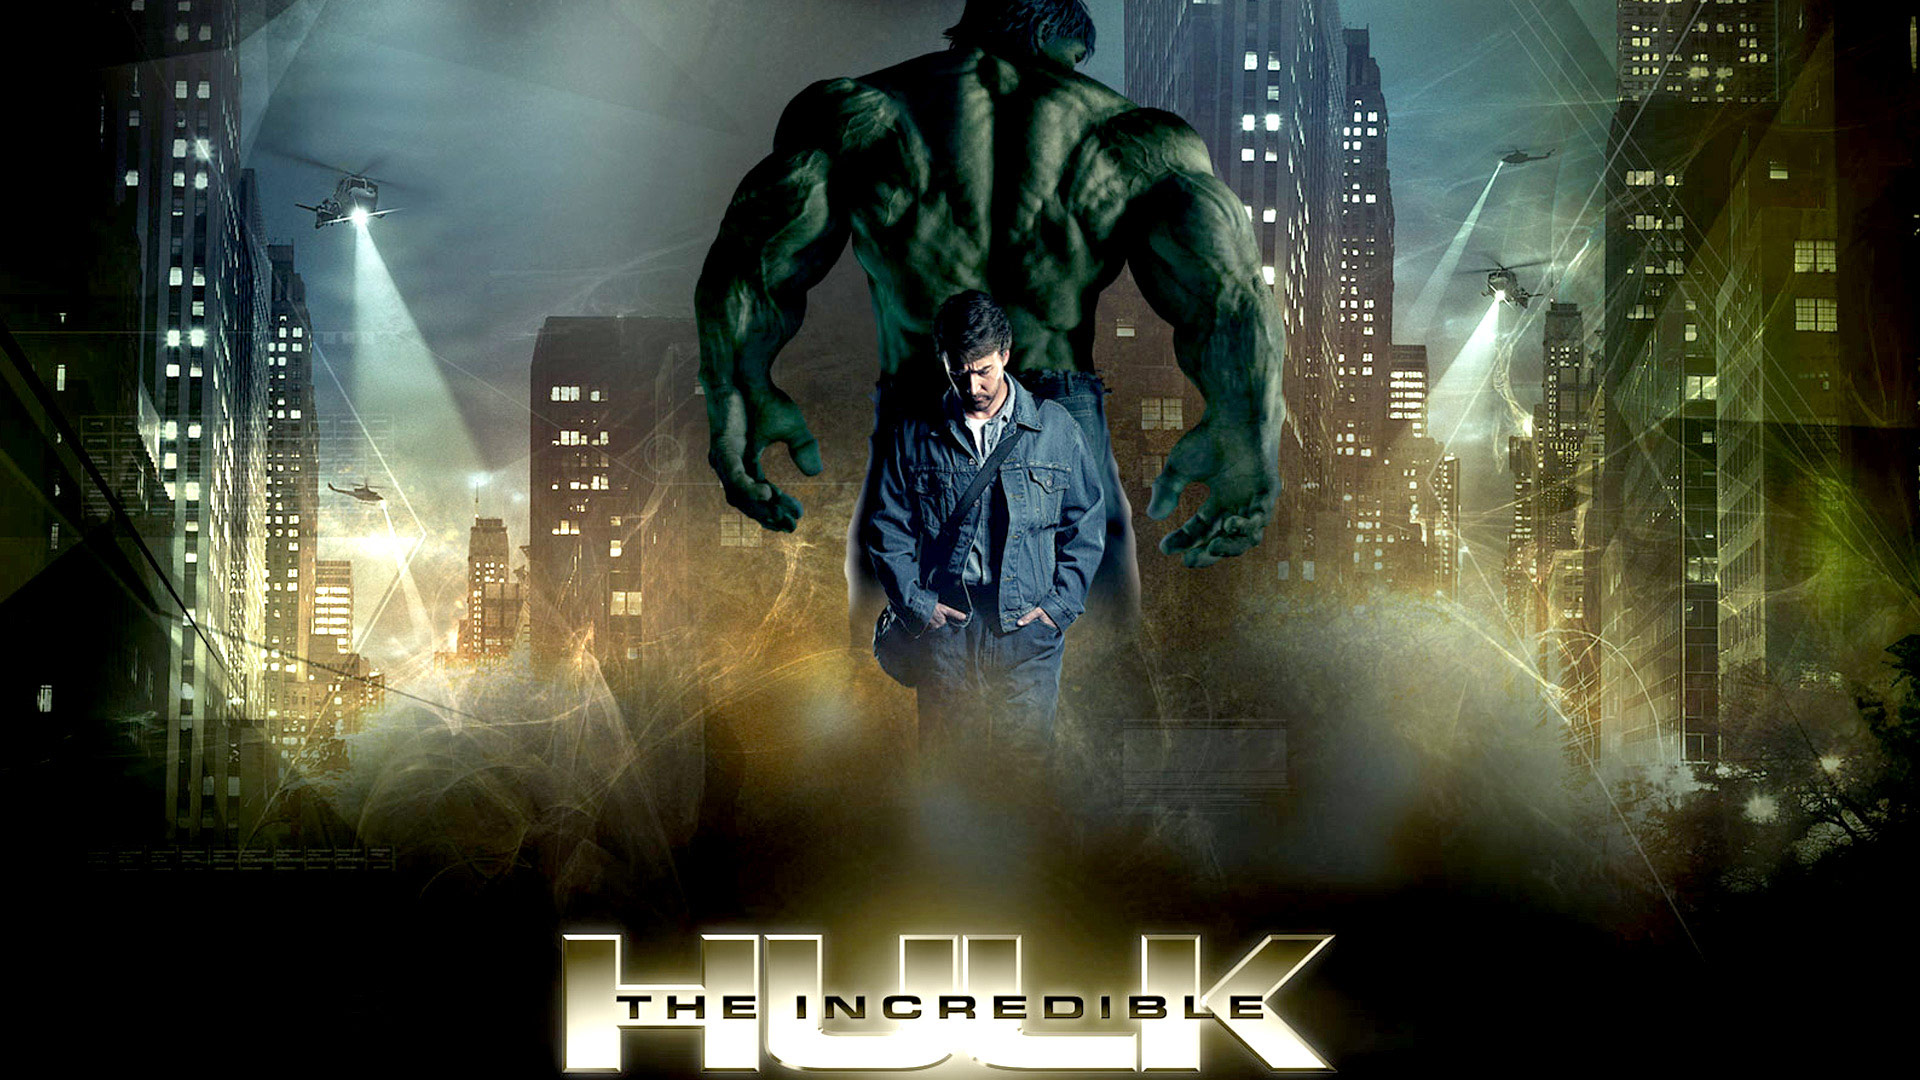 HQ Definition The Incredible Hulk Background Images for 1920x1080